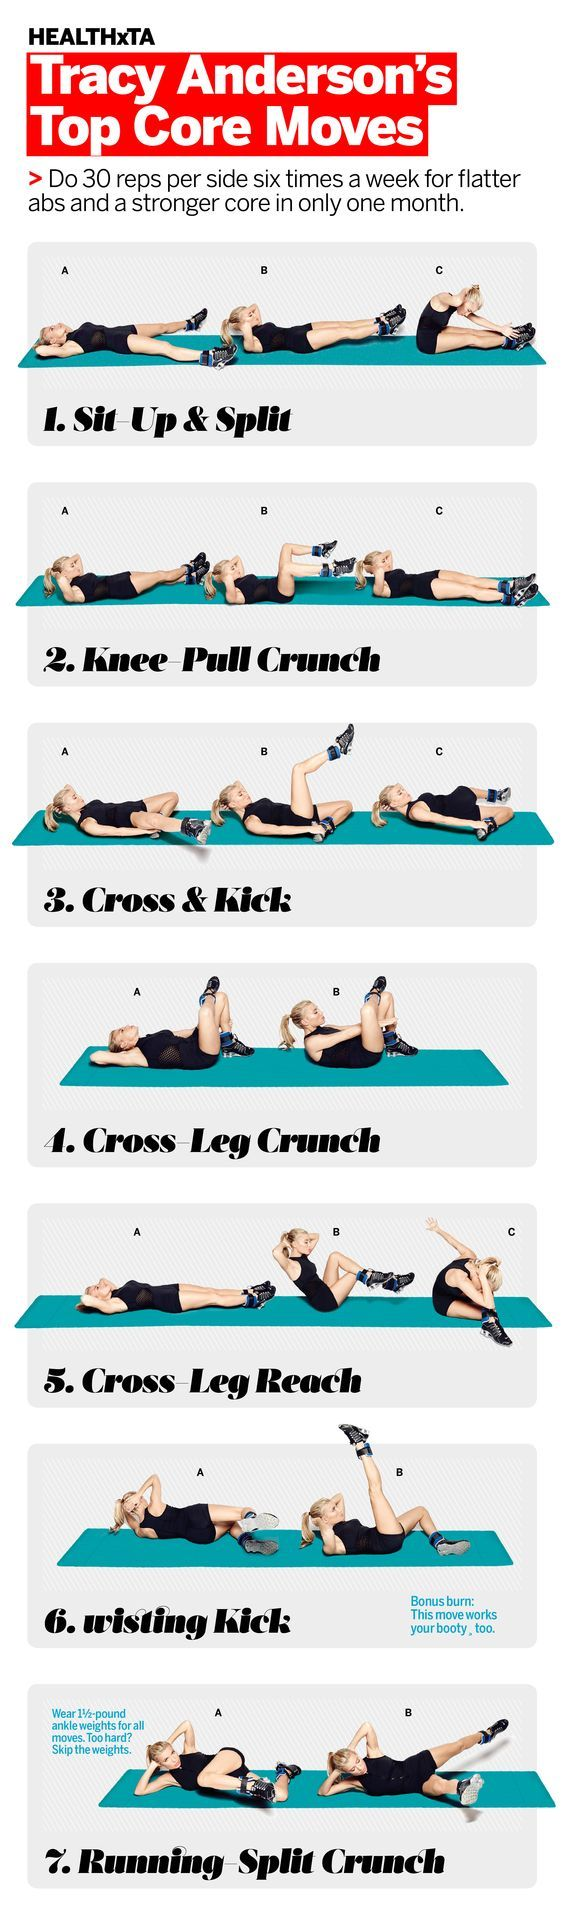 Tracy Anderson's Top Exercises for Flatter Abs and a Stronger Core: This seven-move series, created exclusively for Health readers by Tracy, is part of our 30-Day Core Challenge: Transform Your Butt, Back & Abs. It promises to do wonders for your waistline just in time for summer. #HEALTHxTA   Health.com